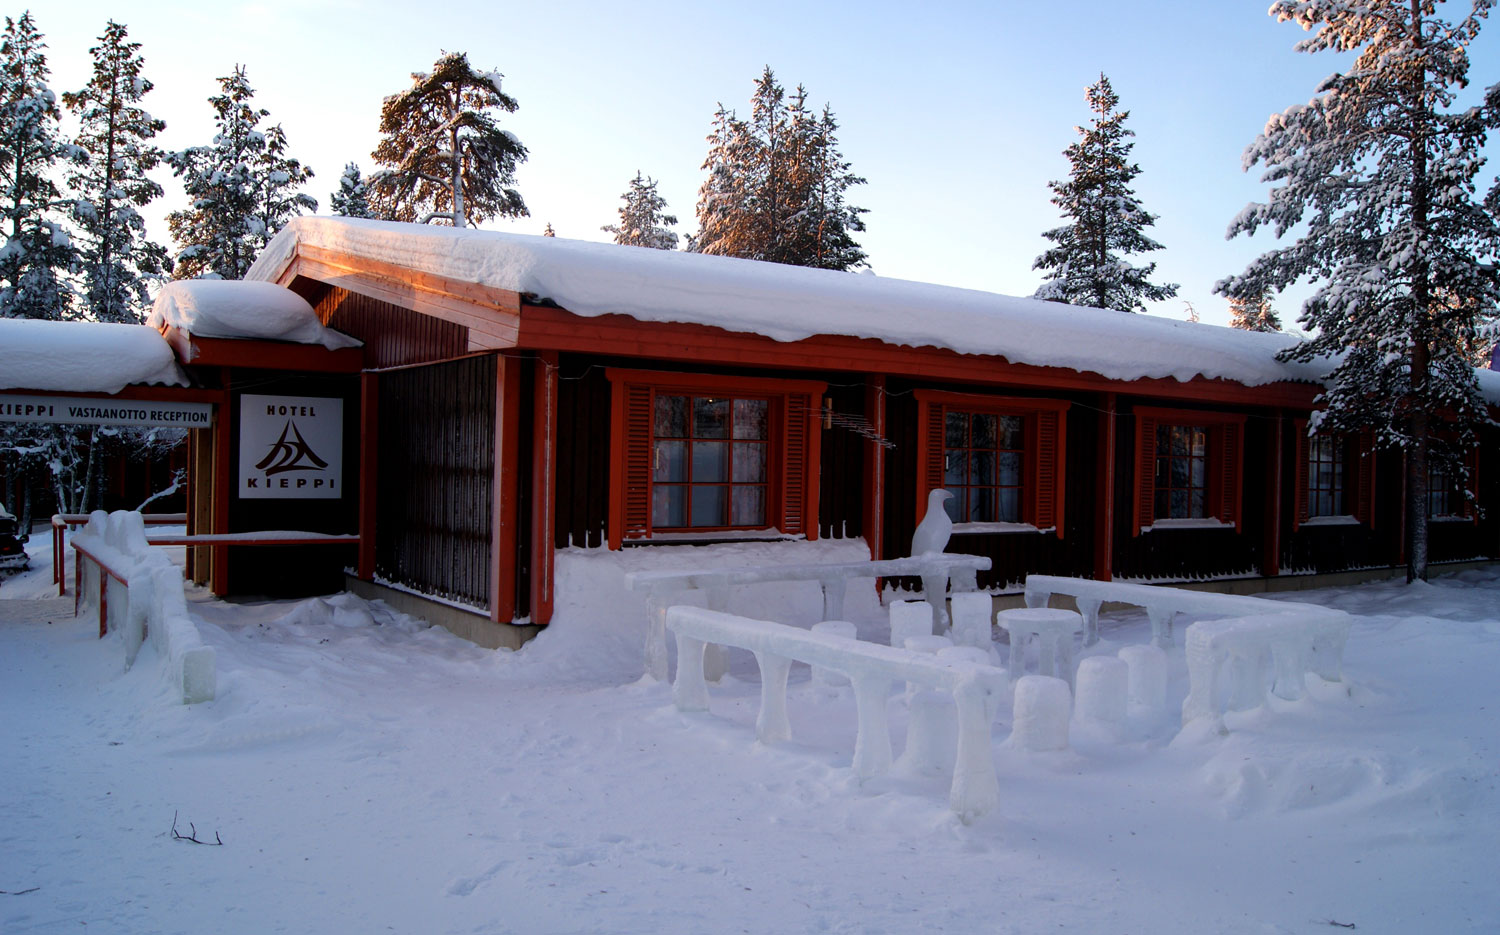 Saariselkä Inn - Entrance